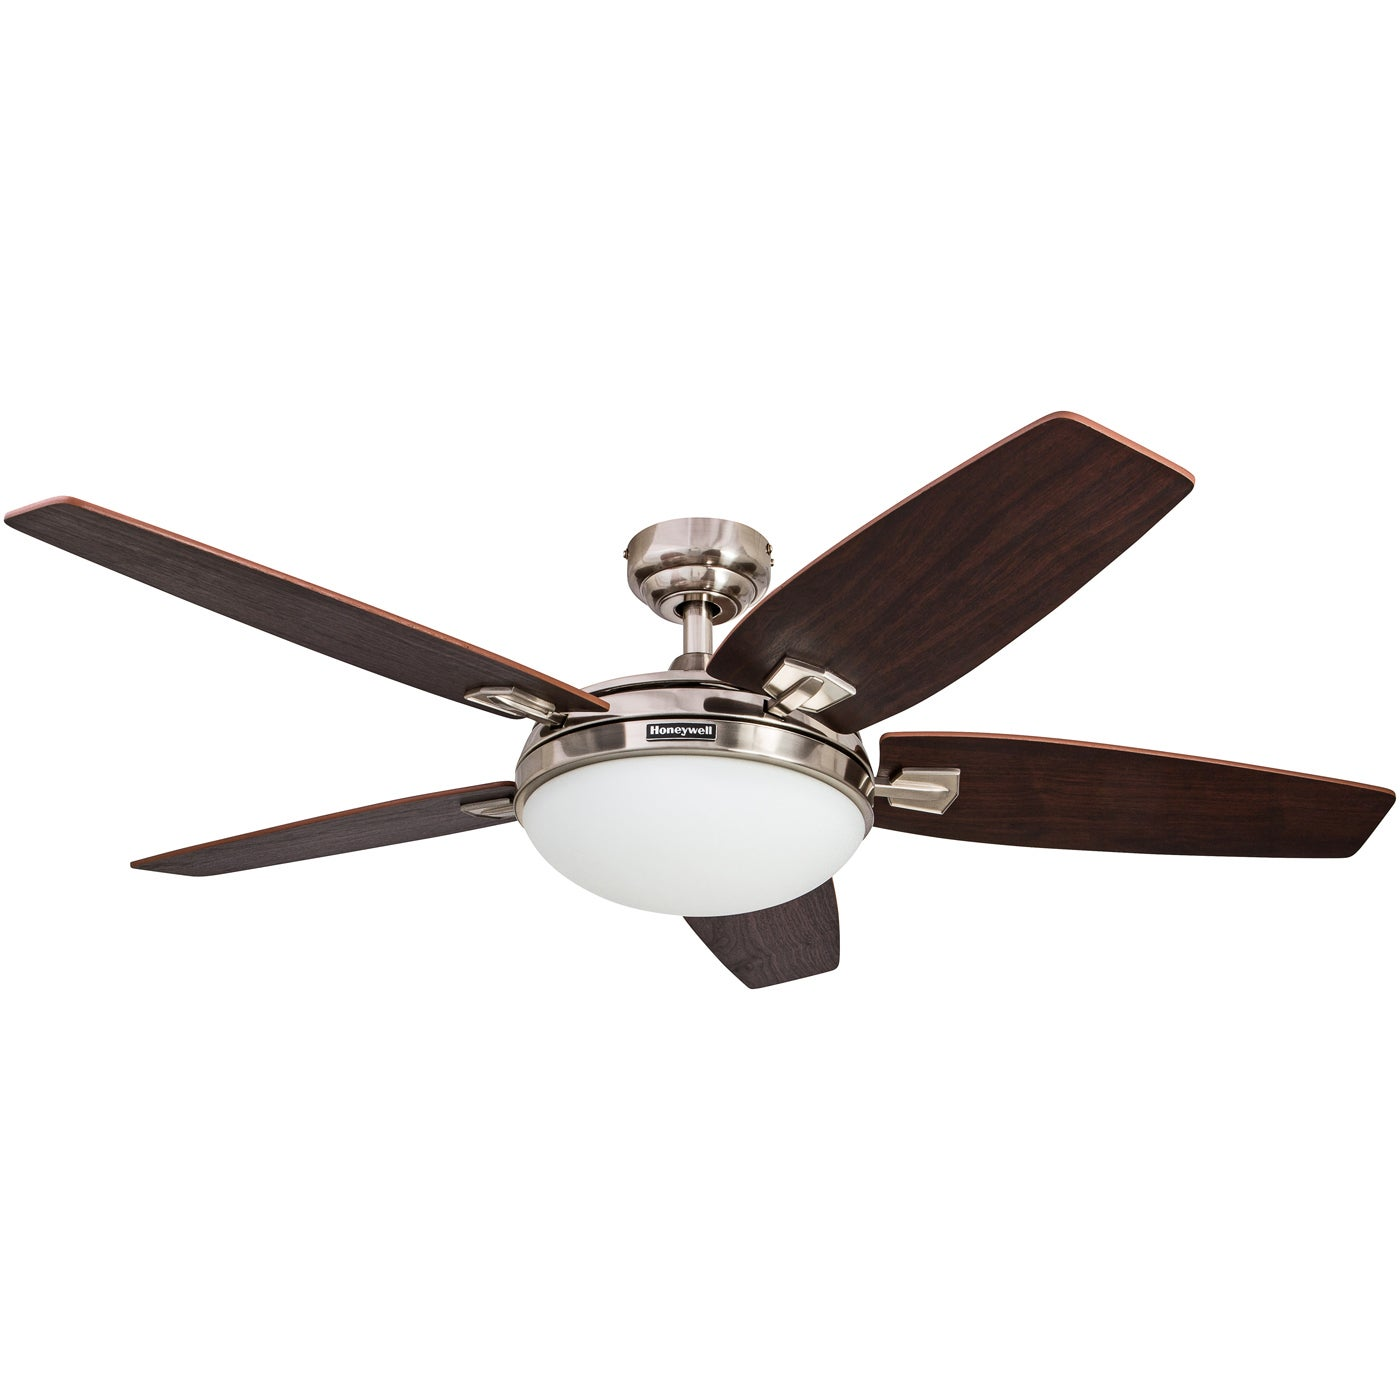 Shop 48 honeywell carmel brushed nickel ceiling fan with integrated shop 48 honeywell carmel brushed nickel ceiling fan with integrated light and remote free shipping today overstock 16000064 aloadofball Choice Image